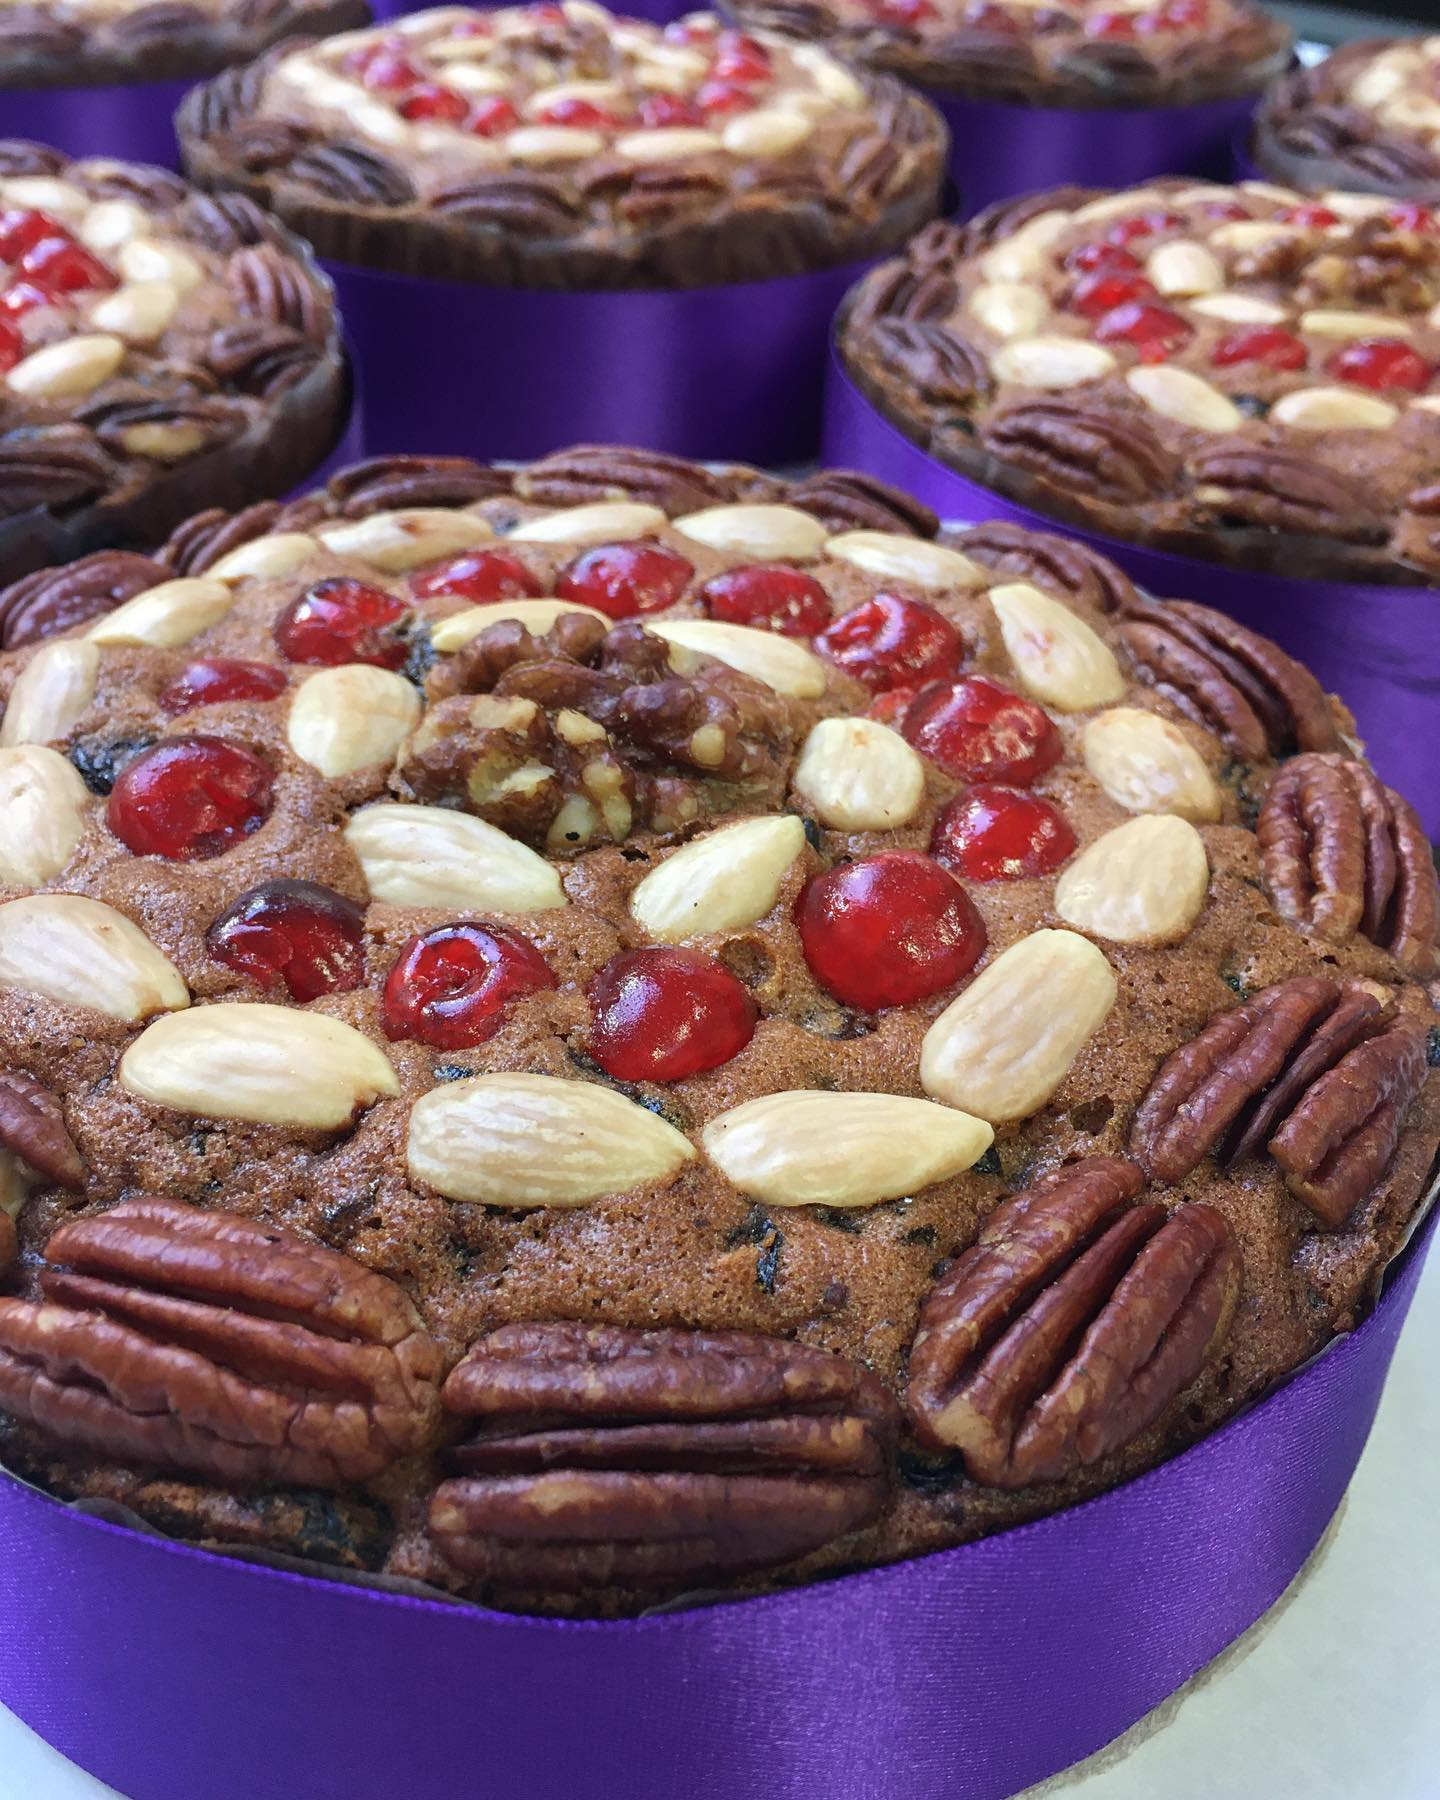 Dundee Cake - Cherry & Walnut - No Peel